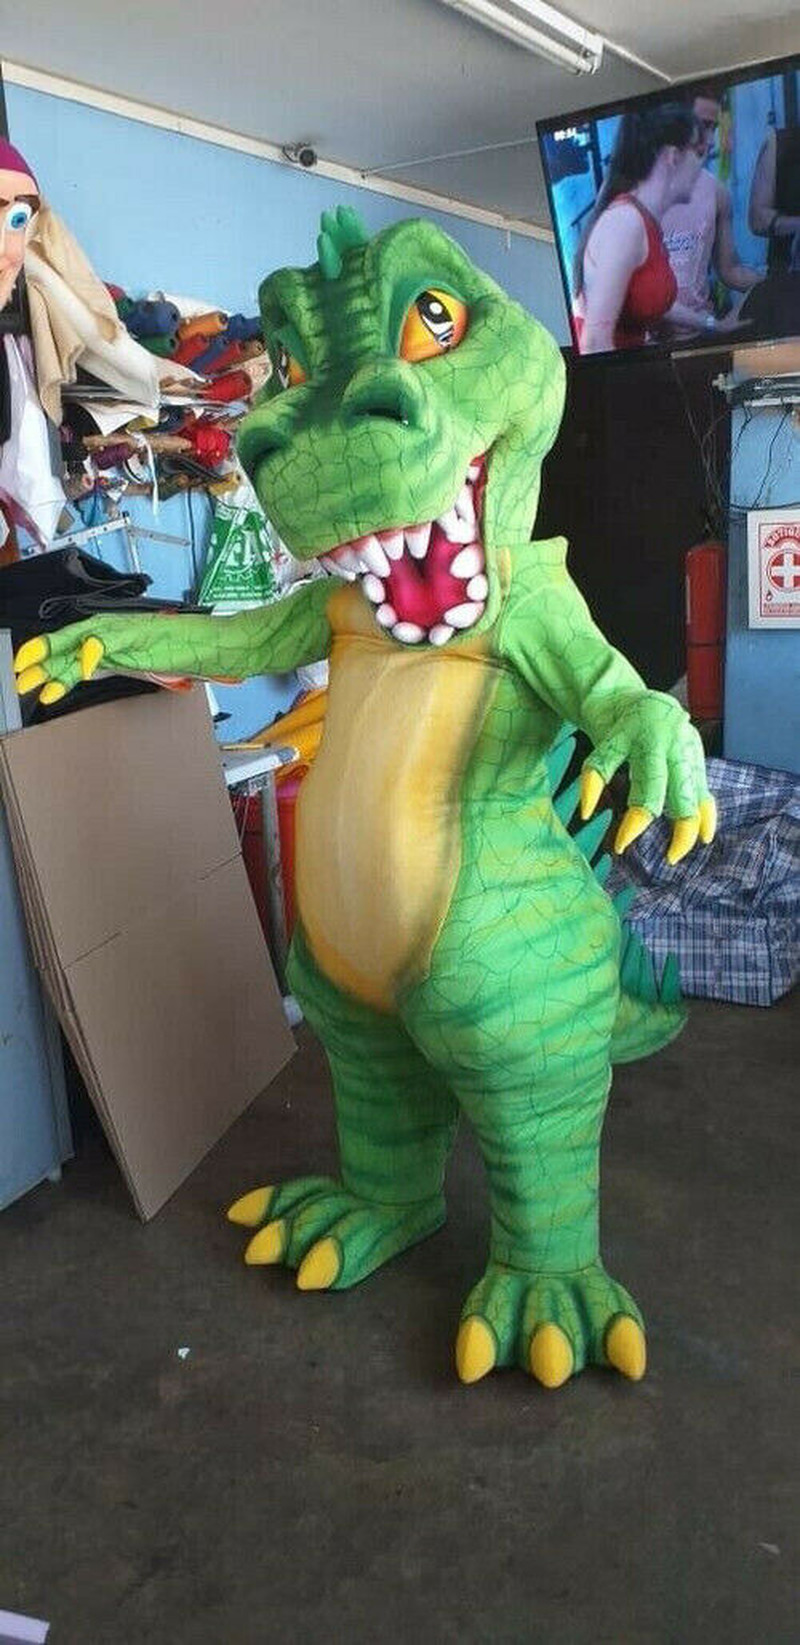 Halloween Green Dinosaur Mascot Costume Suit Cosplay Party Fancy Dress Outfits Advertising Promotion Carnival Adults Parade 2019